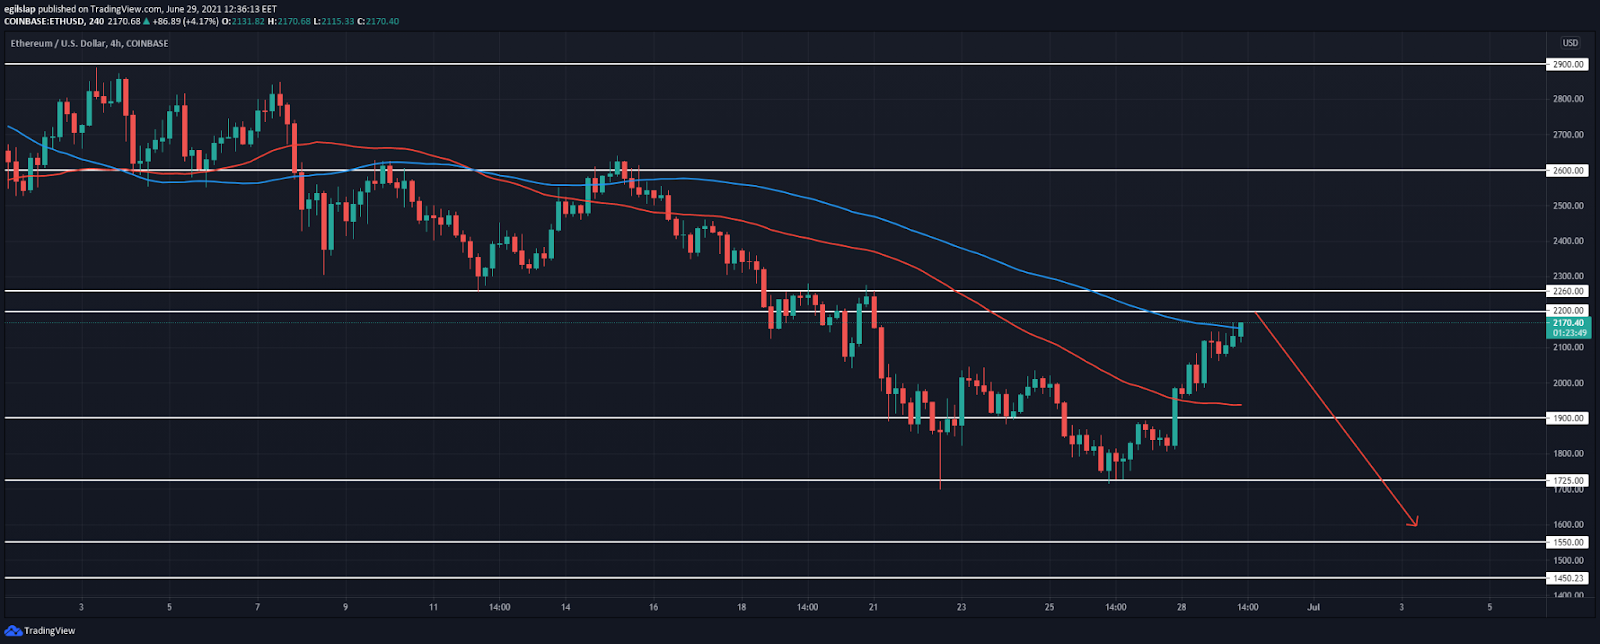 Ethereum price analysis: Ethereum continues moving towards $2,200 resistance, reversal later this week?